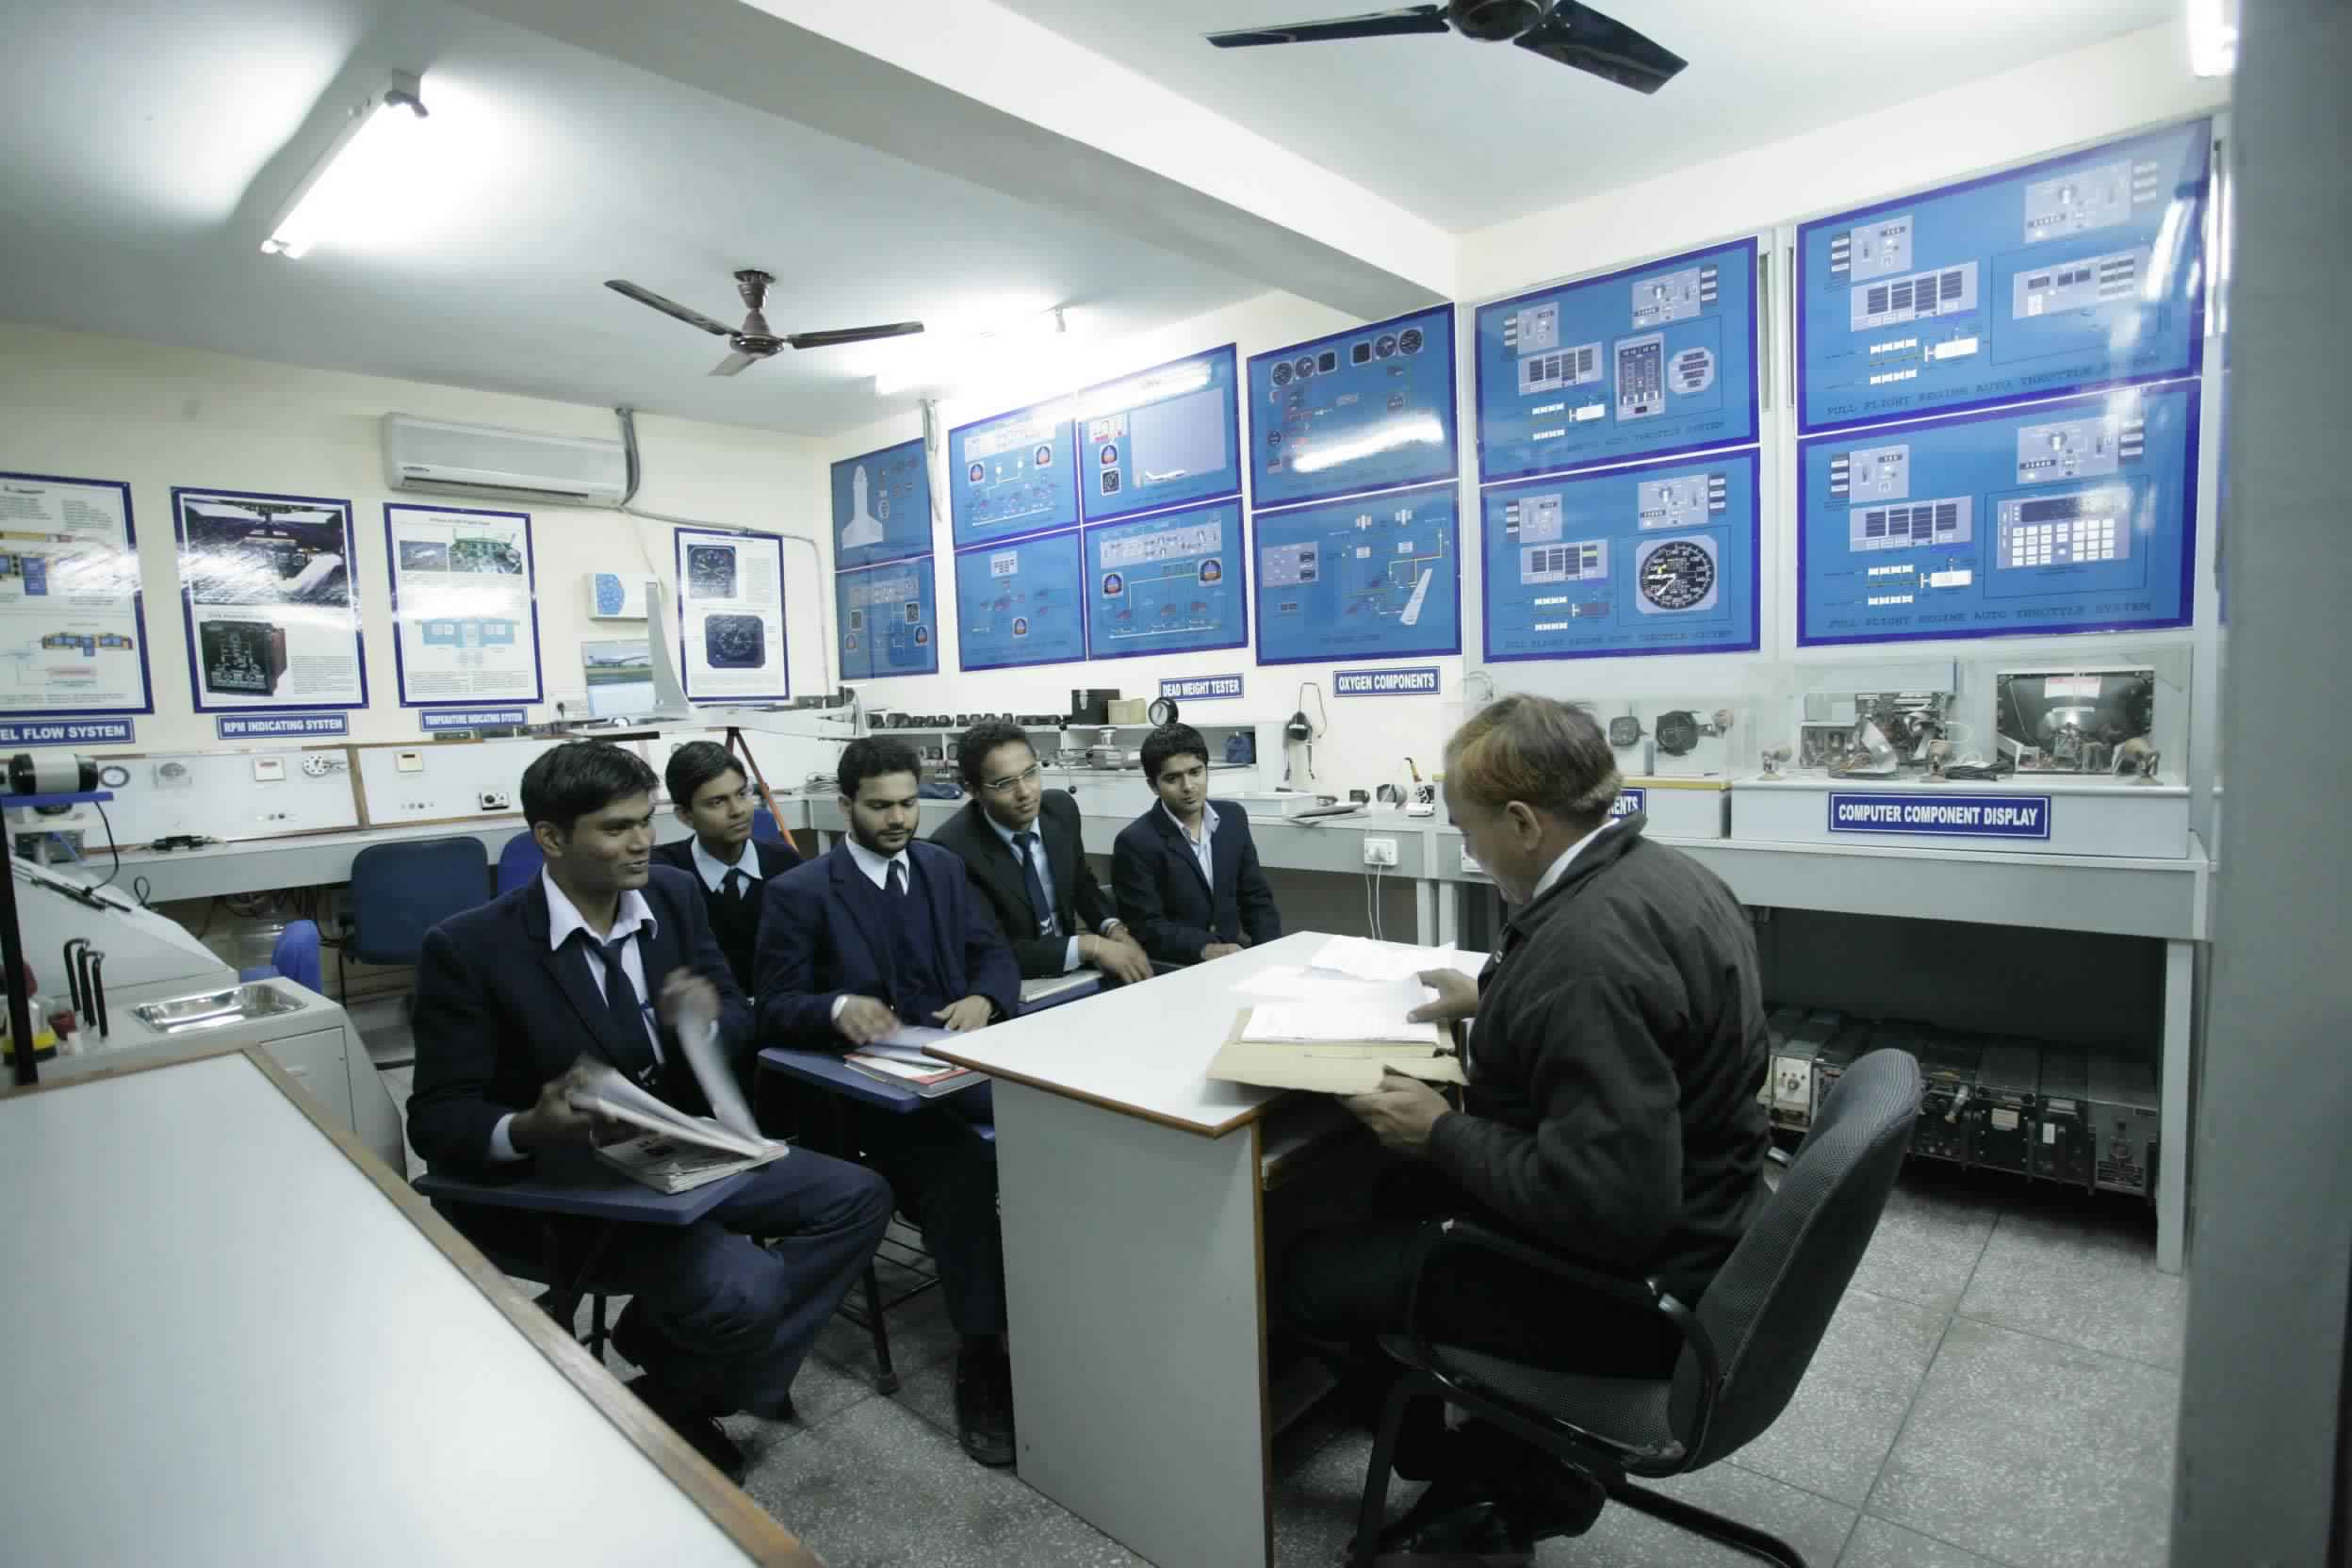 Training in Institute of Aeronautics And Engineering